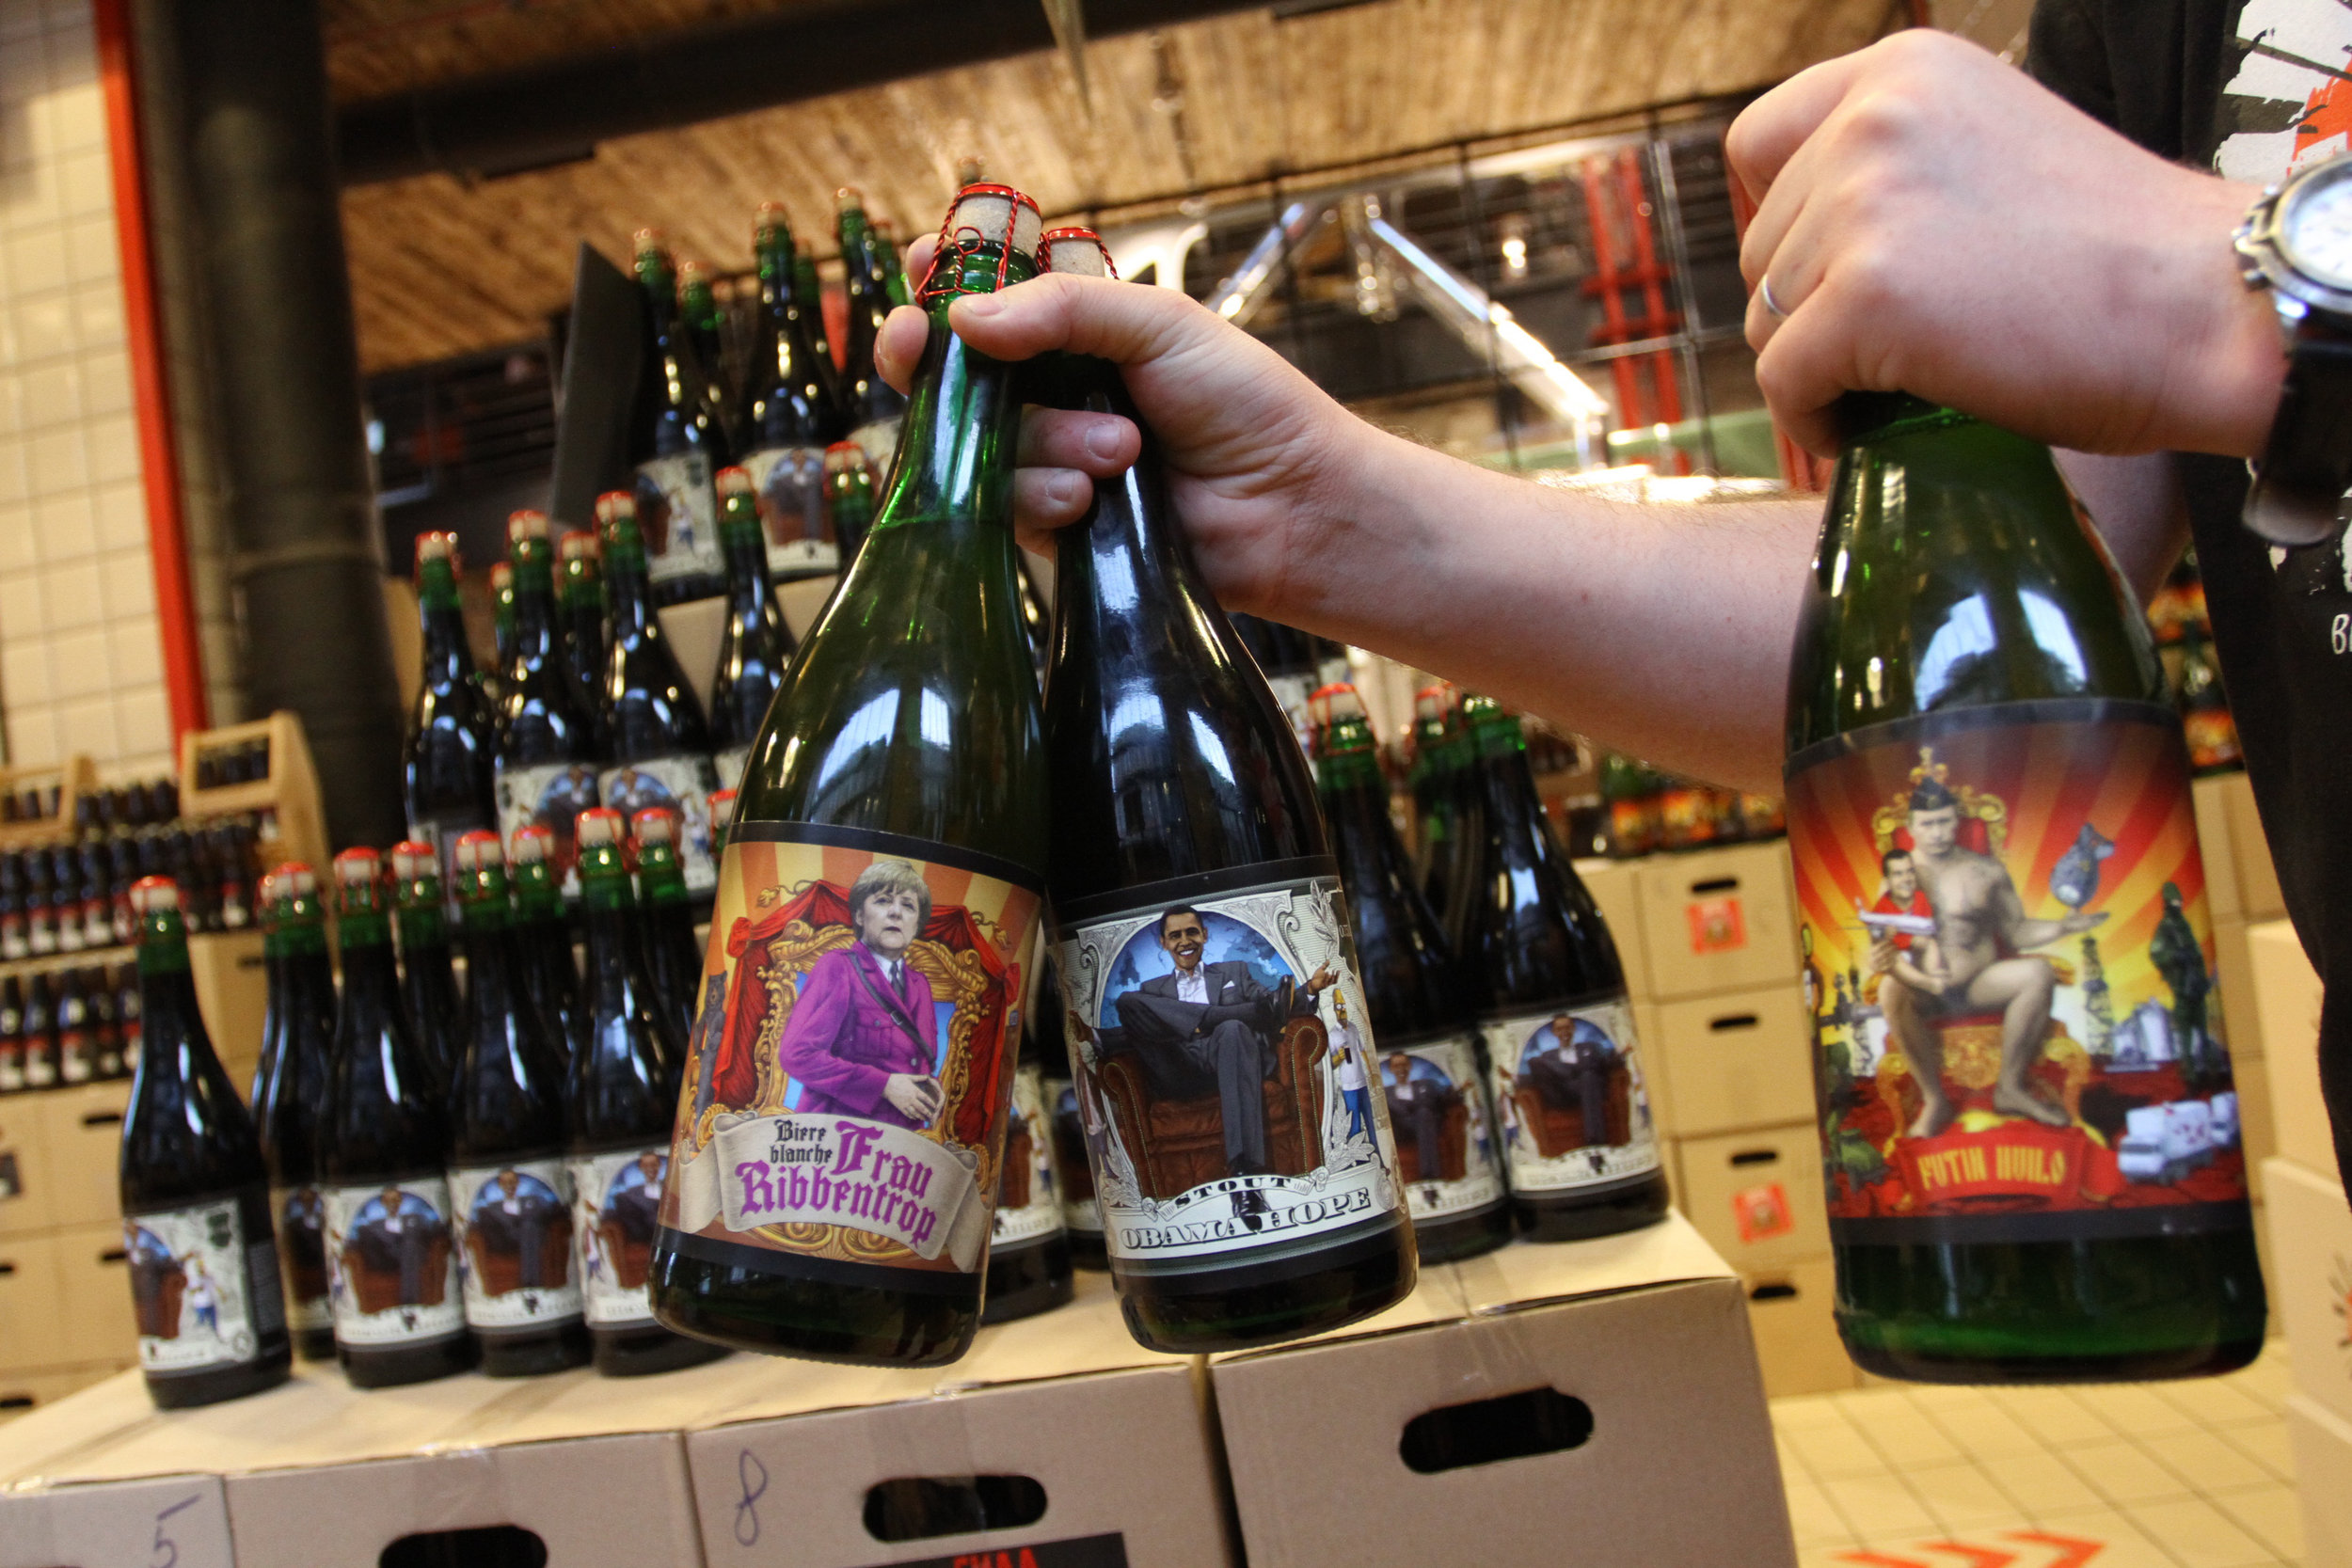 """In Ukraine, One Brewery Puts Putin, Politics on its Beer Labels (OCTOBER)   """"Because we are Ukrainian citizens, we have our own political views... This is our view and this is our beer and this is our label, so we do what we want."""""""